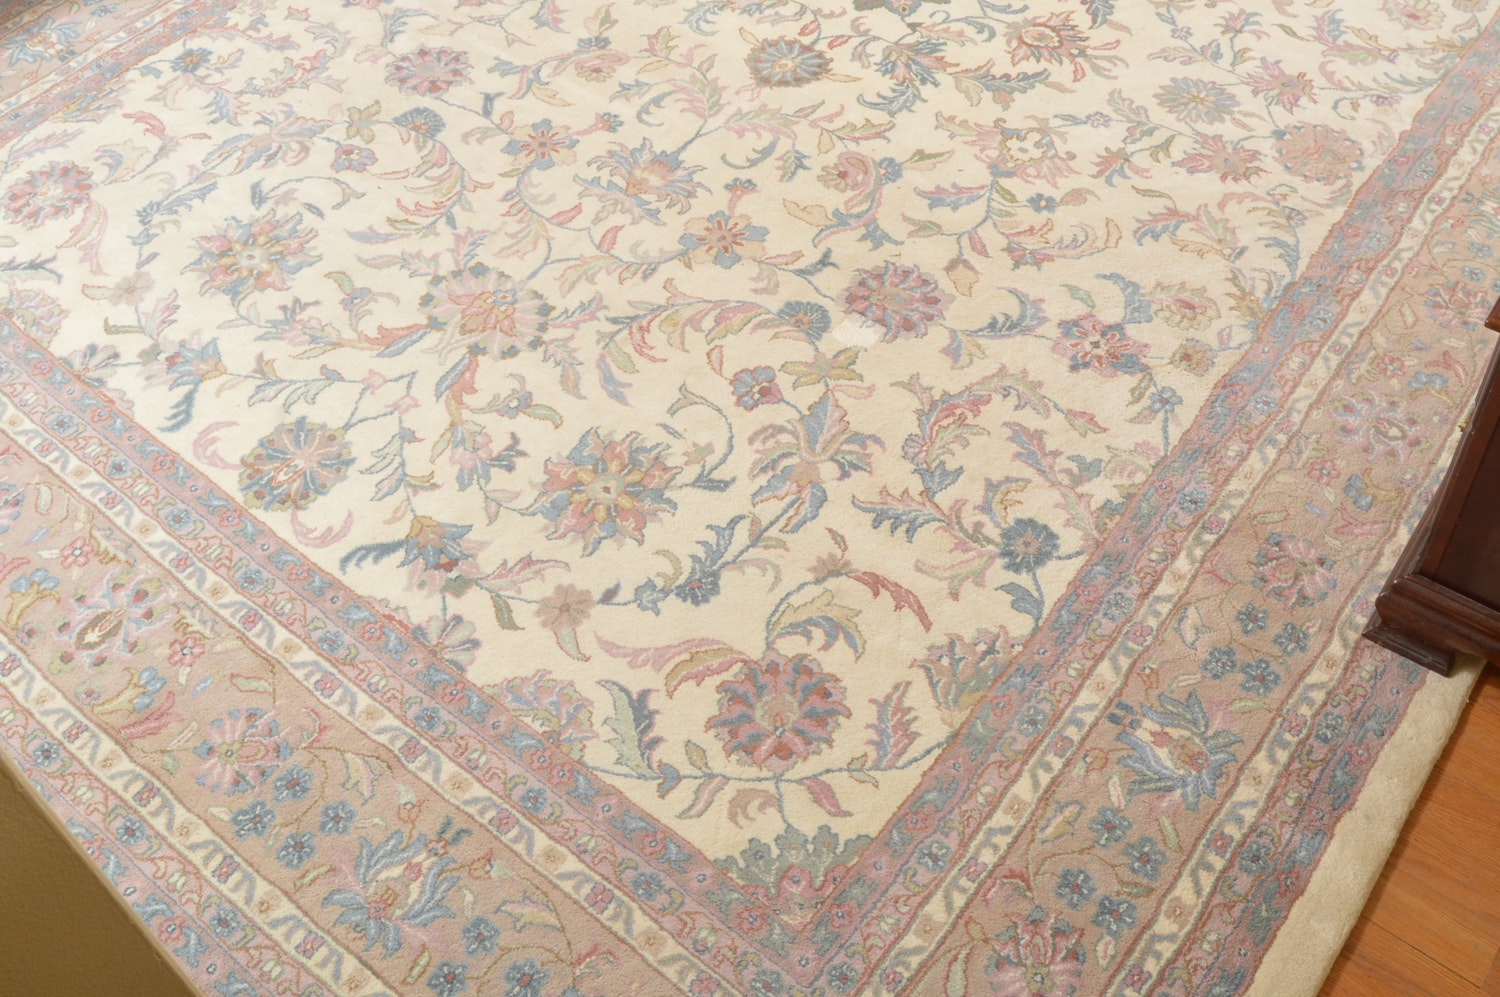 Hand-Knotted Peshawar Style Wool Area Rug